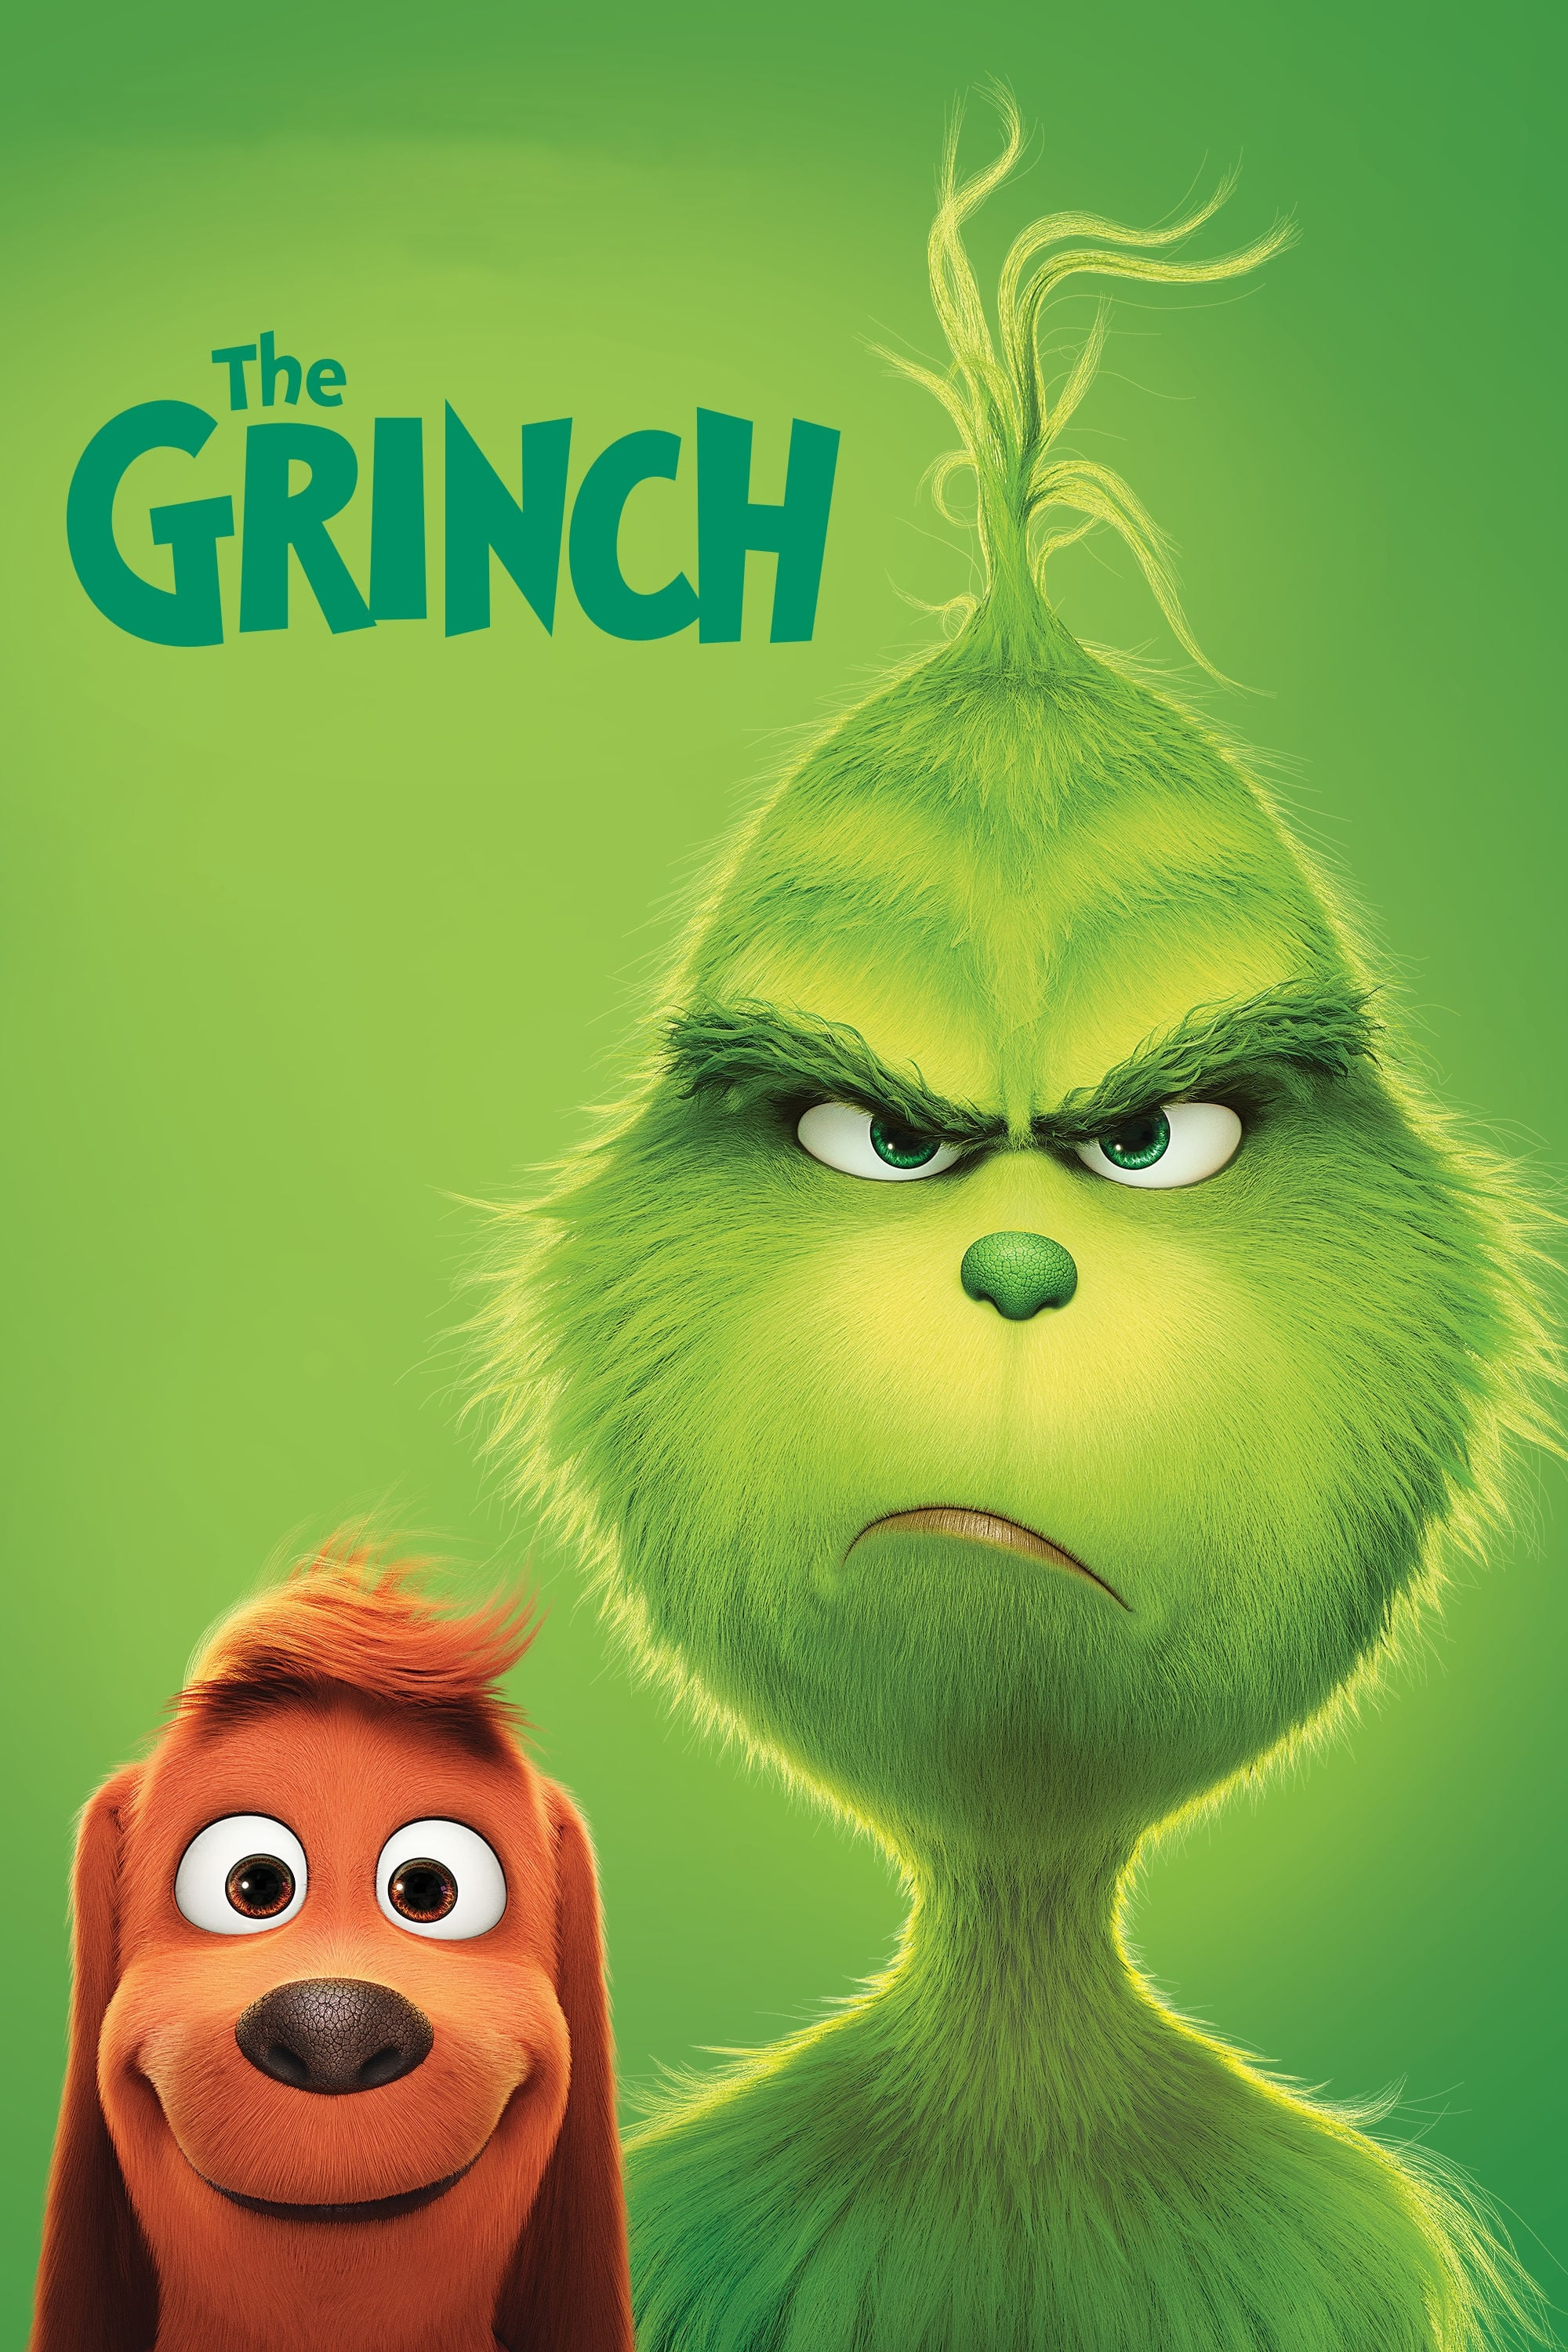 O Grinch (2019) Torrent - BluRay 3D HSBS 1080p Dual Áudio 5.1 Download